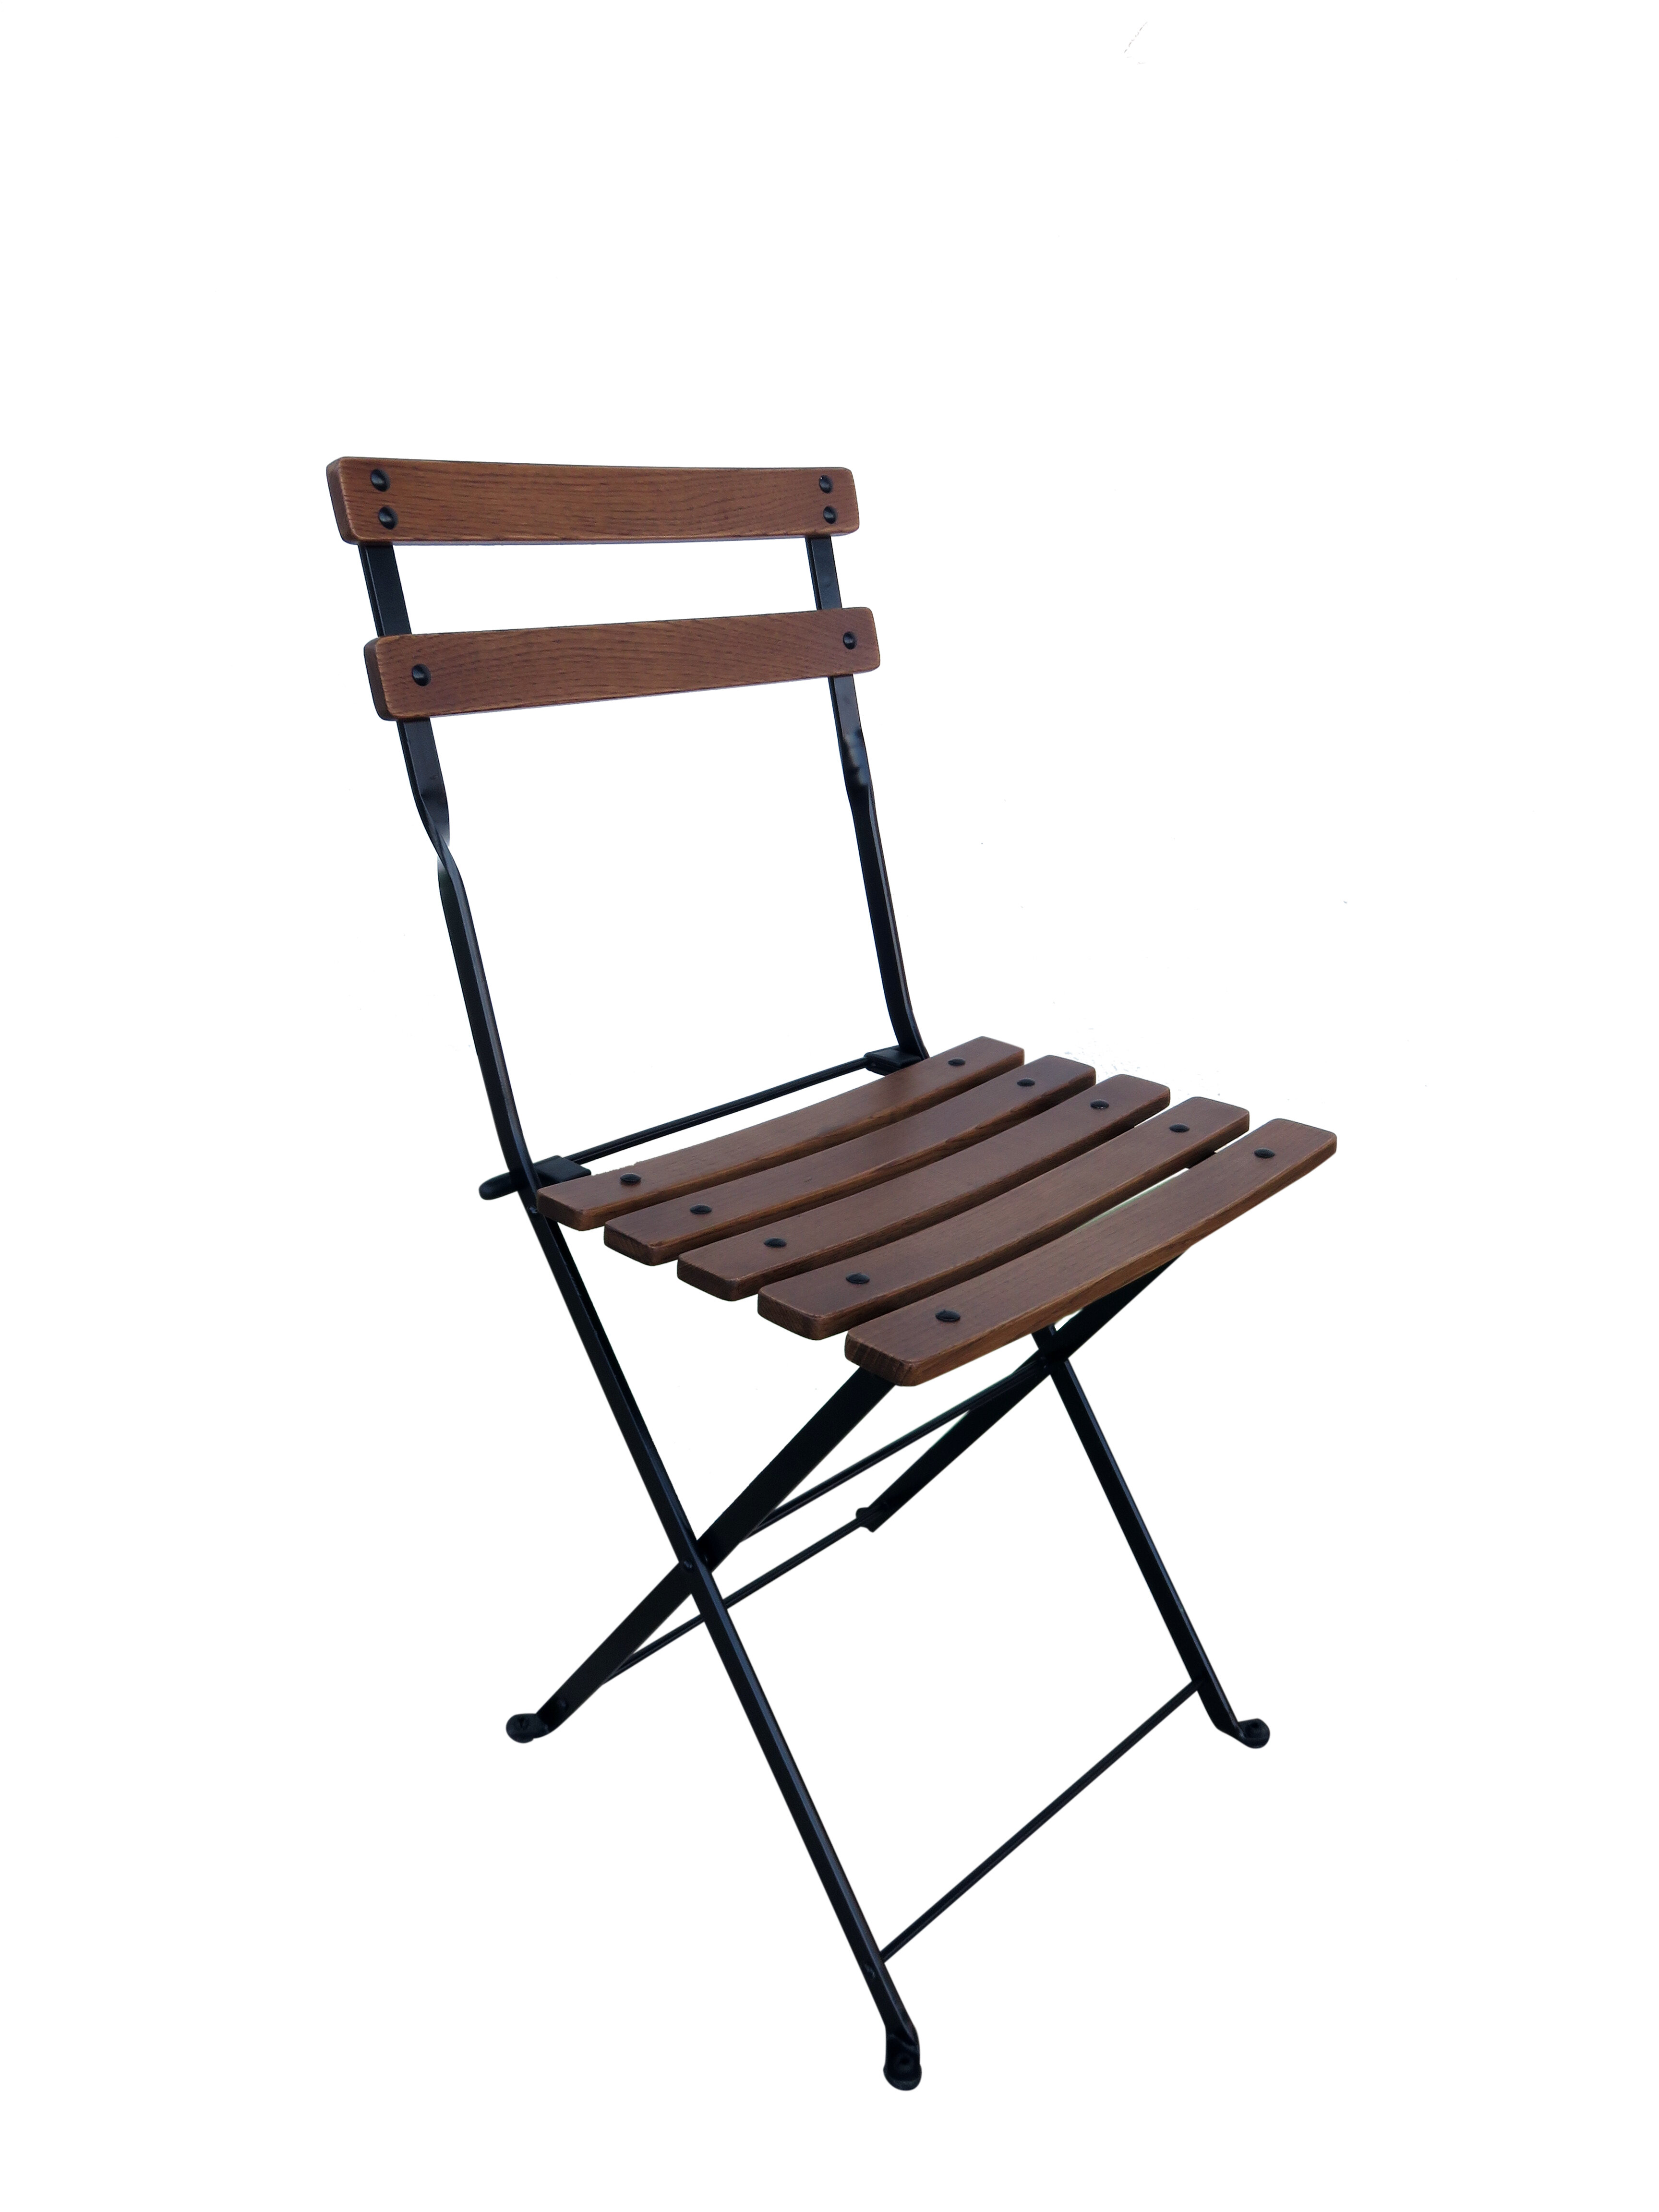 Magnificent French Cafe Bistro Folding Patio Dining Chair Machost Co Dining Chair Design Ideas Machostcouk